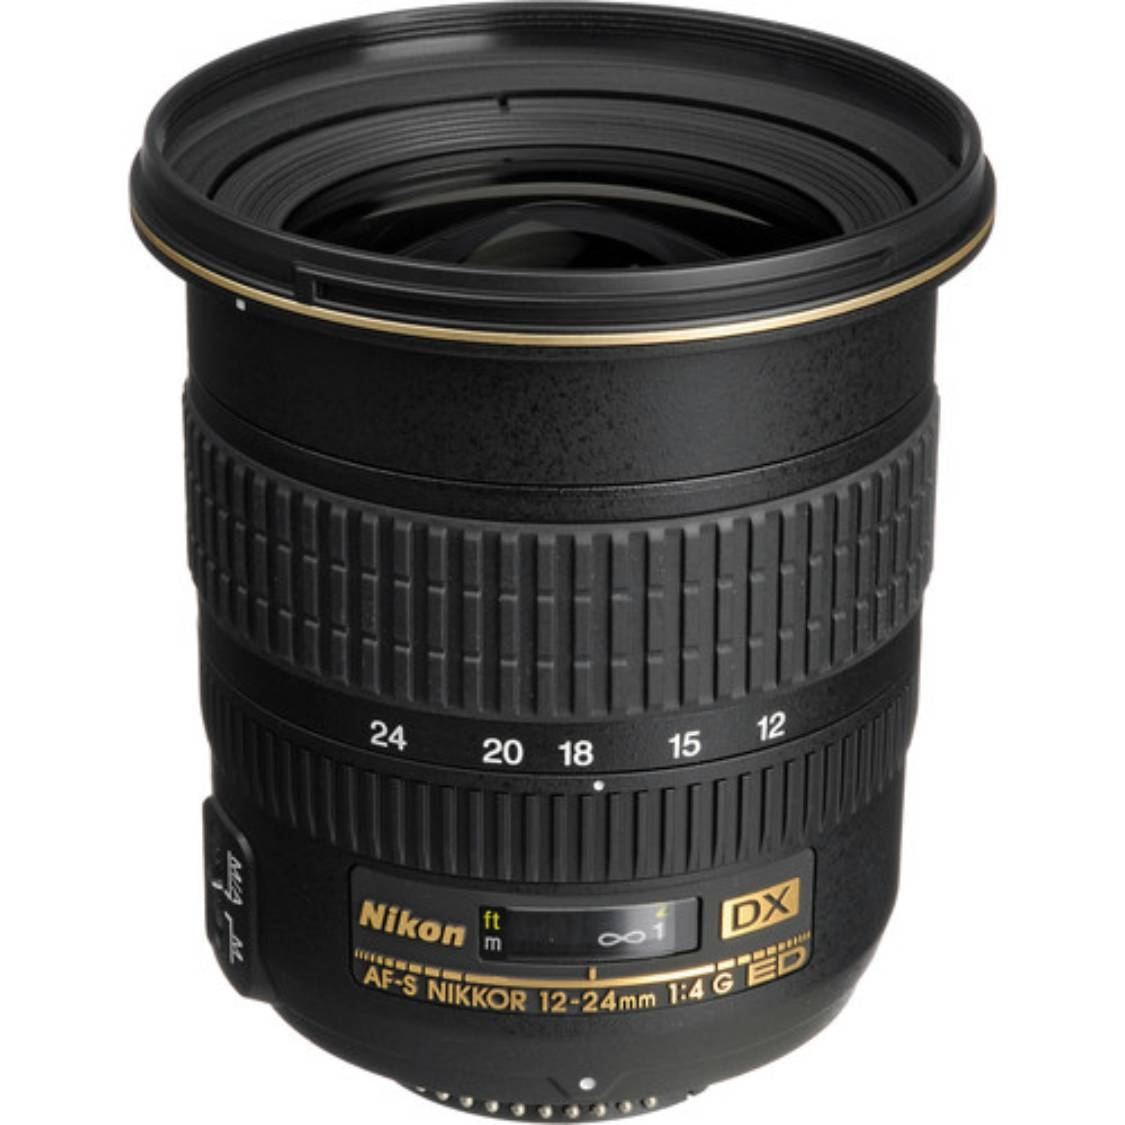 Nikon DX AF-S 12-24mm F4 G Lens - Open Box